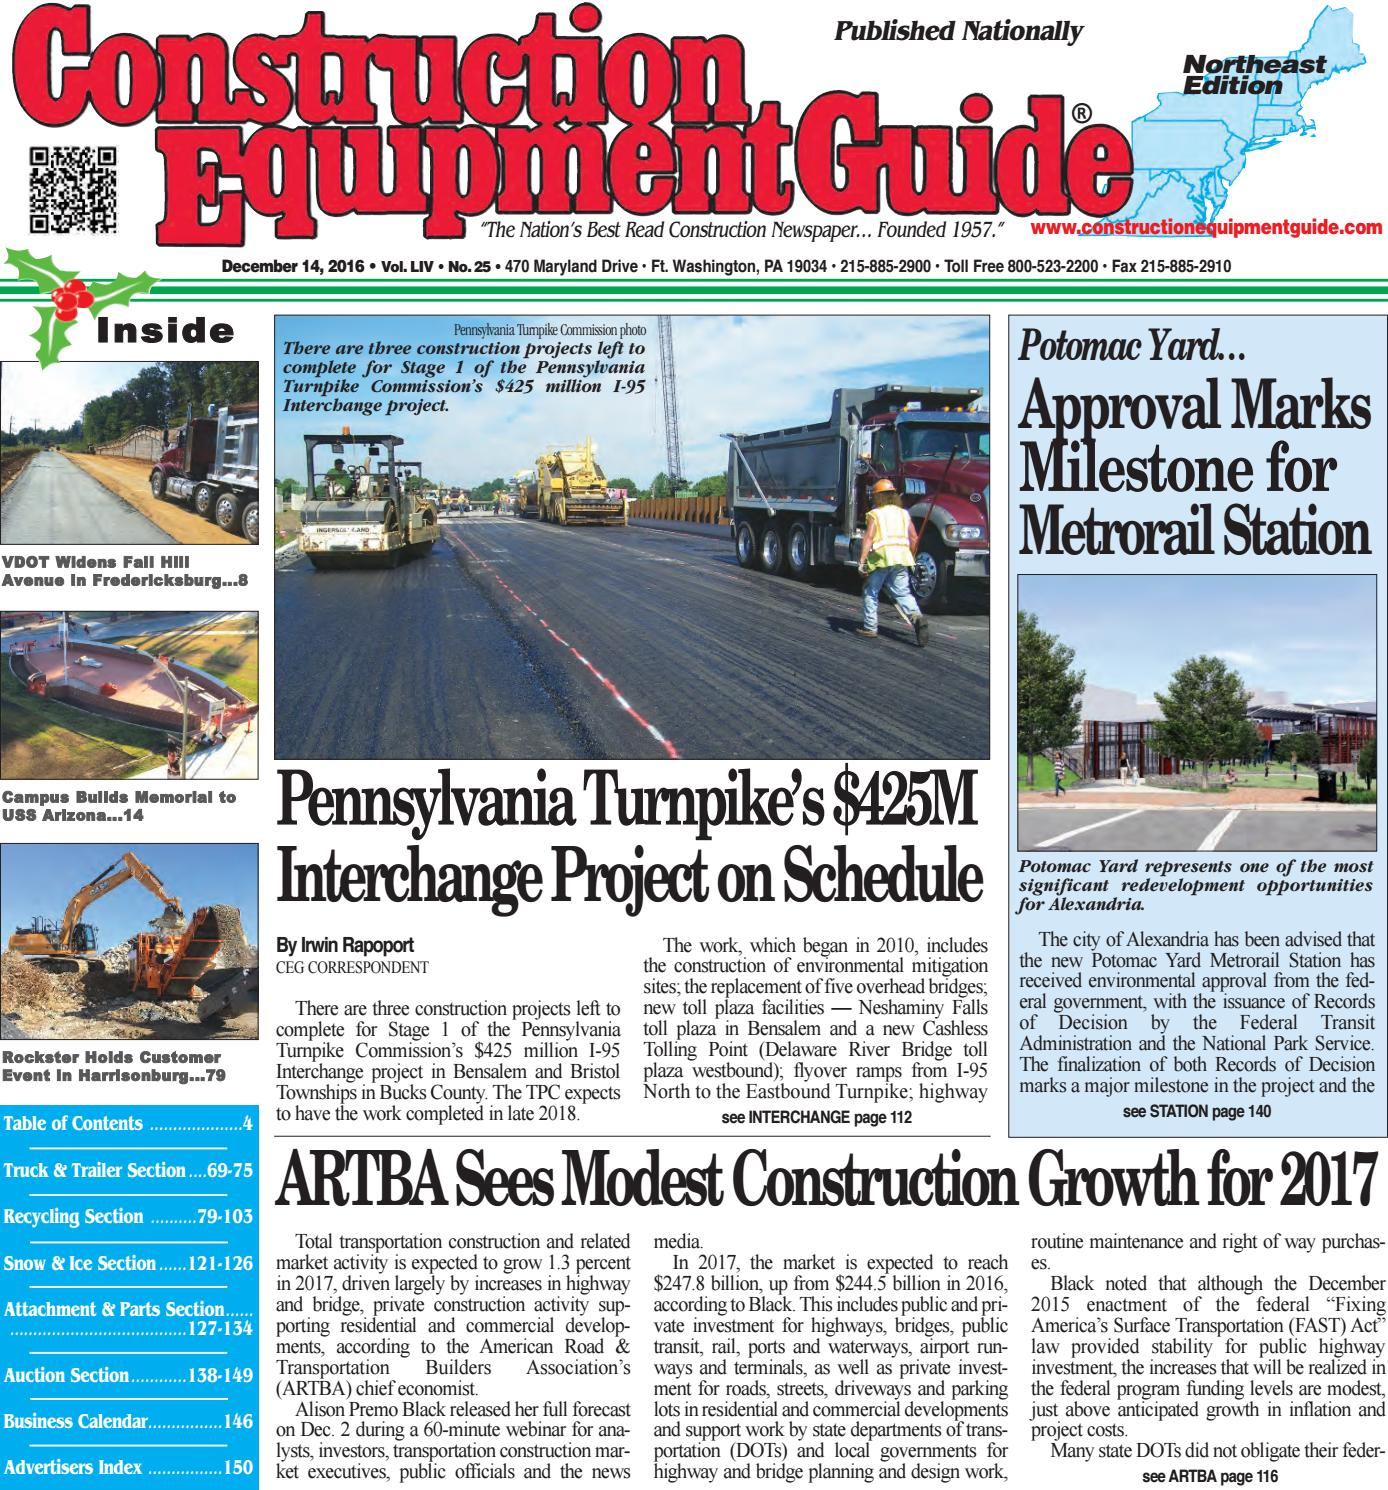 428c85bf504 Northeast 25 December 14, 2016 by Construction Equipment Guide - issuu